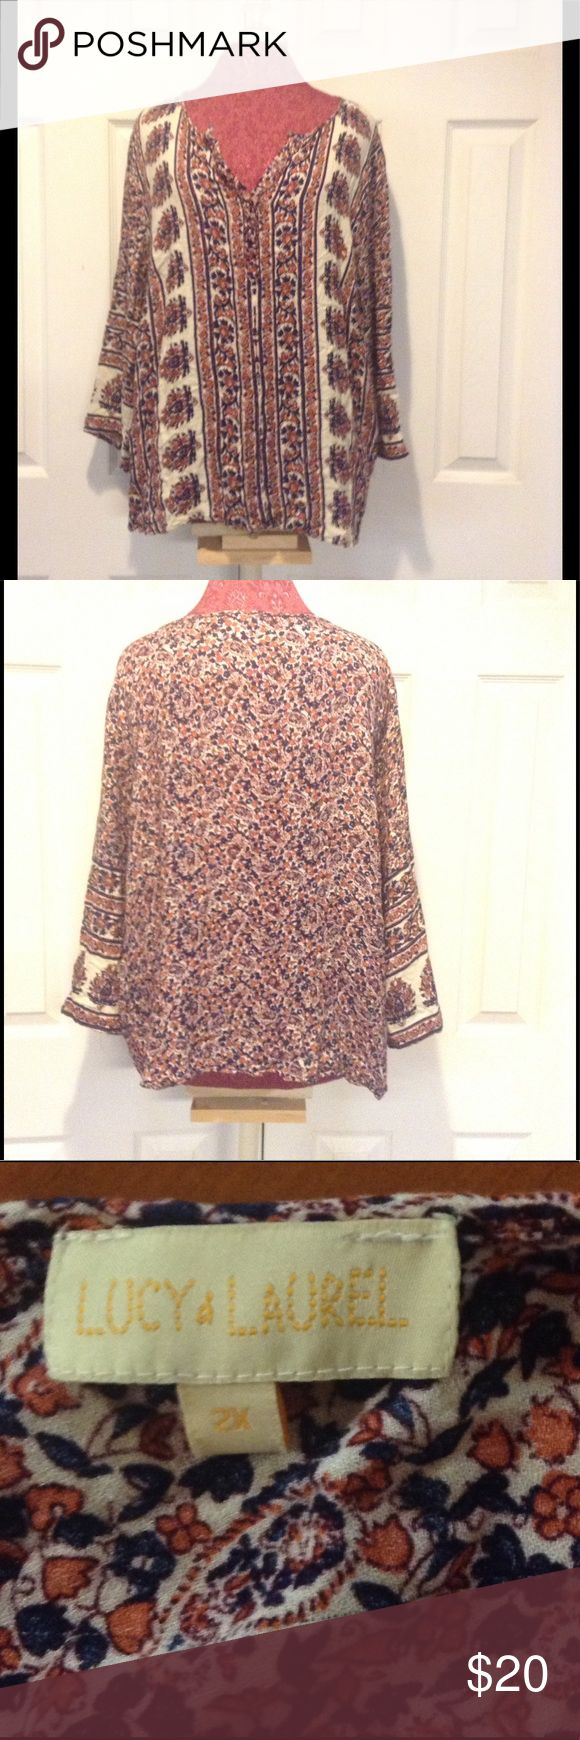 Lucy & Laurel size 2X boho chic tunic For sale we have a Lucy & Laurel boho chic size 2X long sleeved tunic. Great shape no stains or tears. Tops Tunics